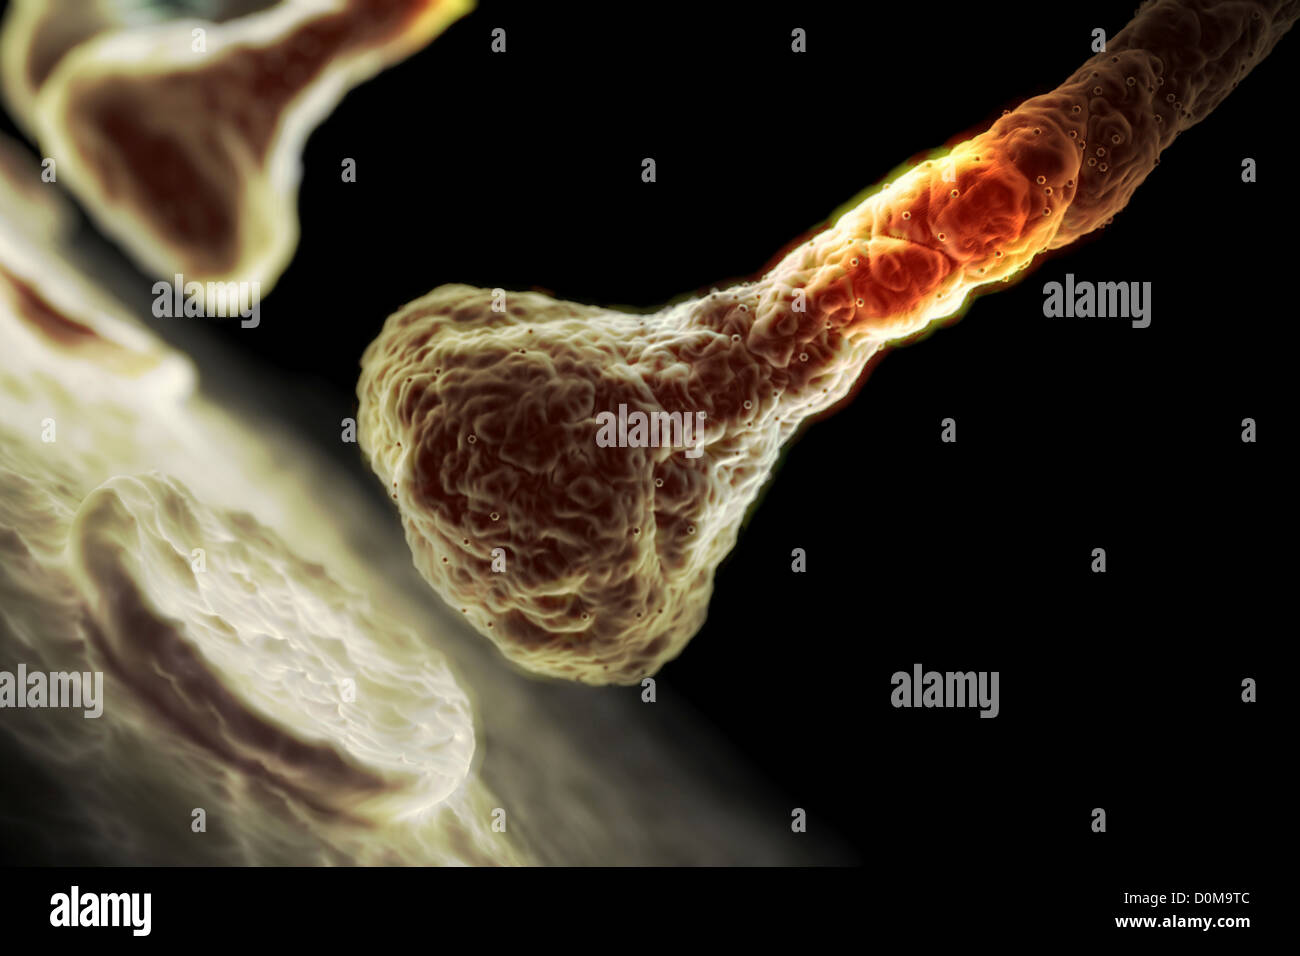 Microscopic styled visualization of a synapse. - Stock Image